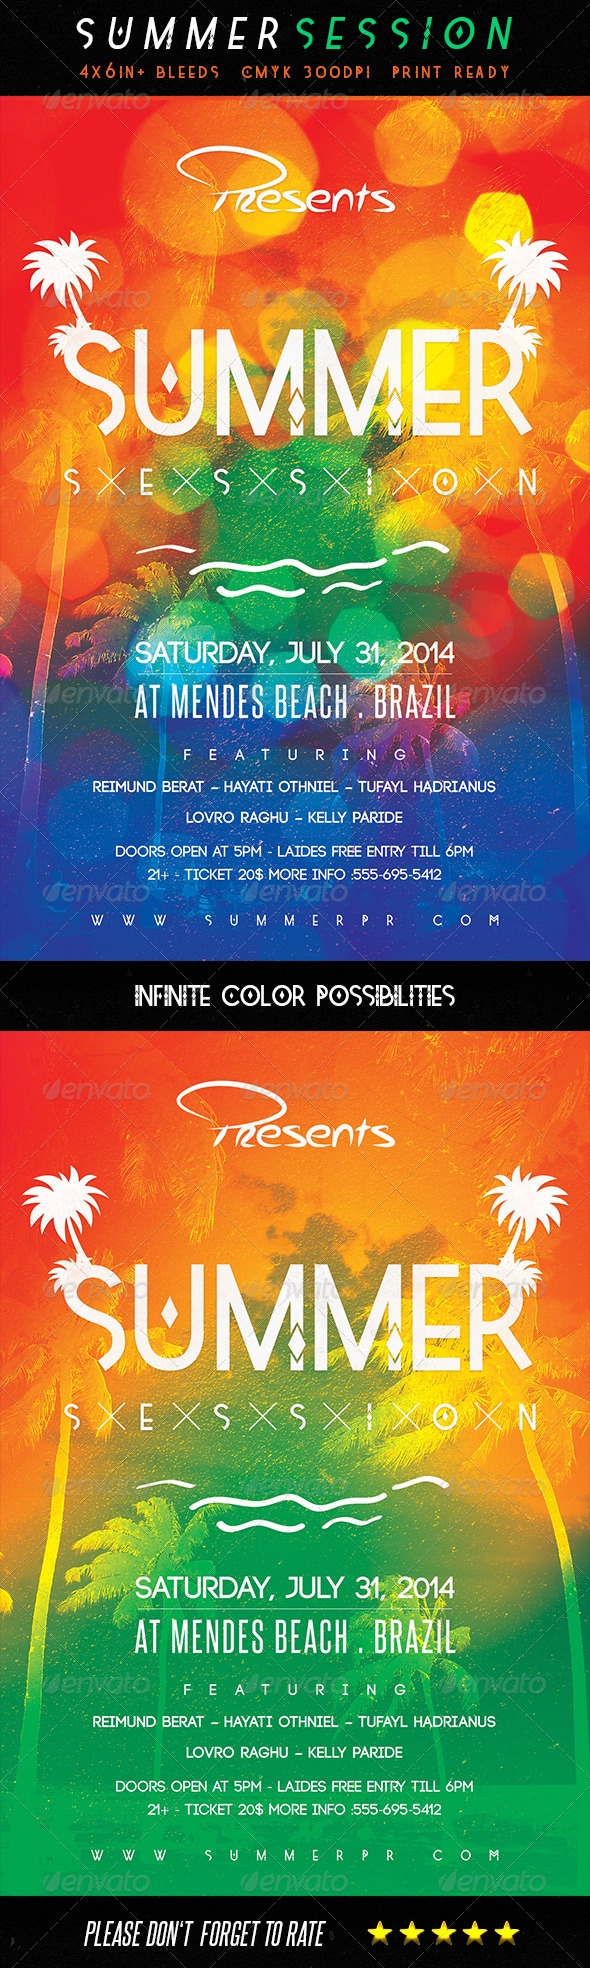 Summer Session Flyer Template